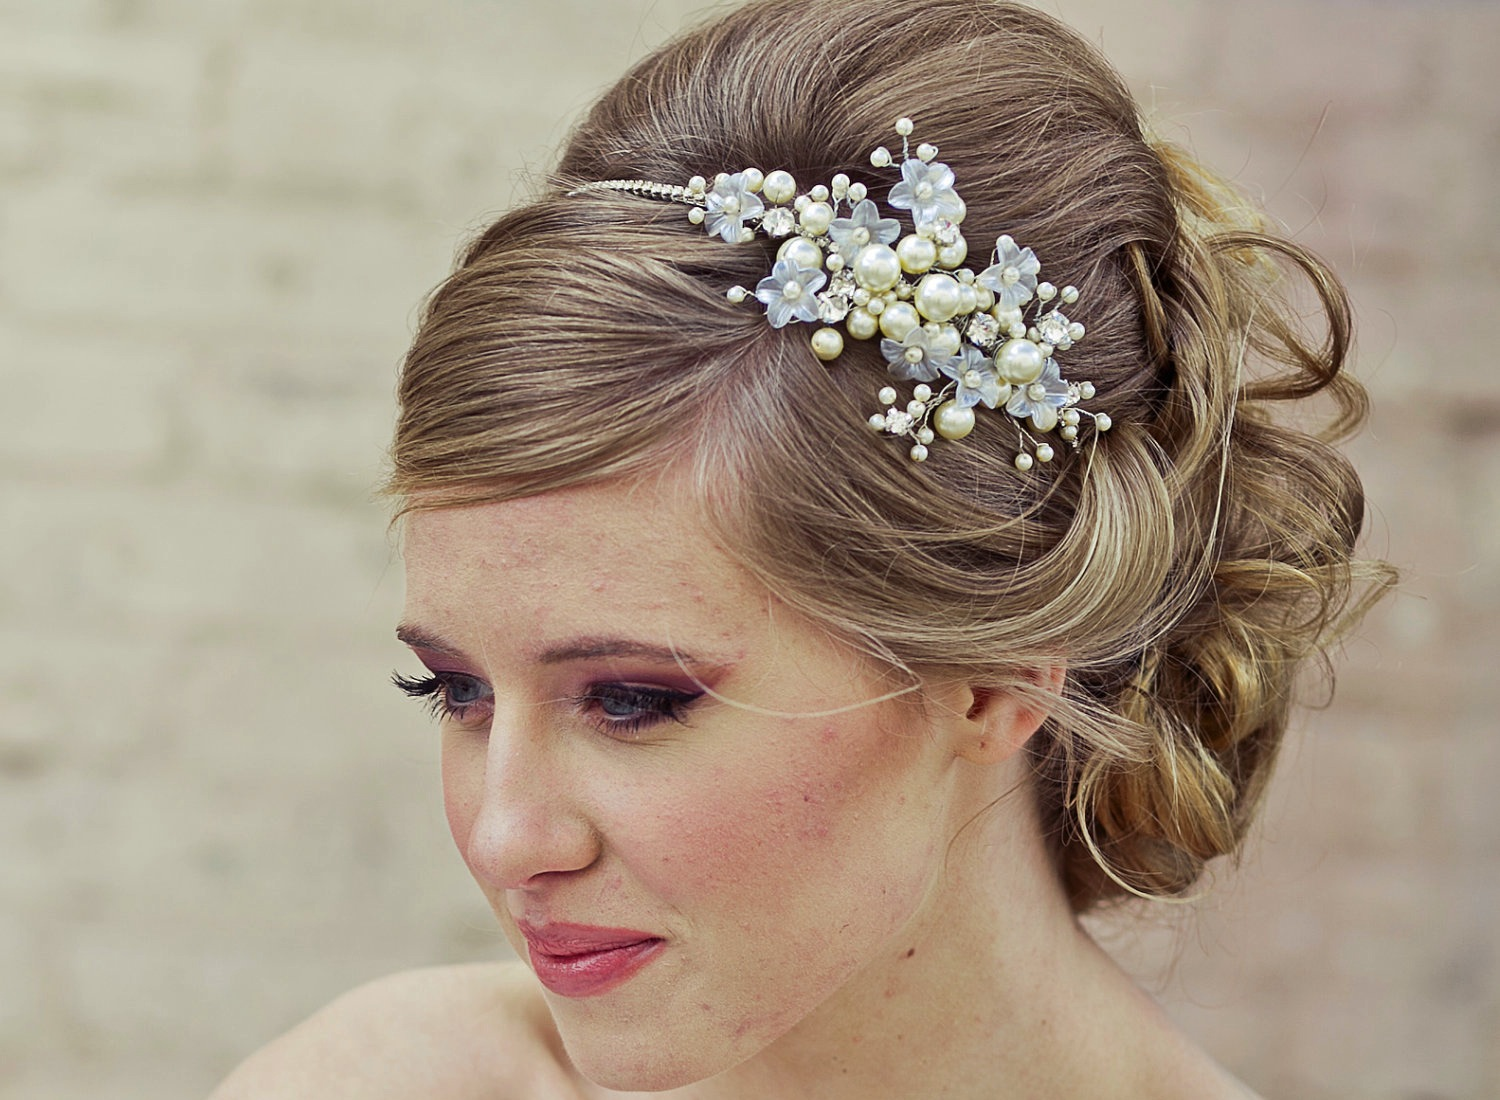 hairstyles with kanekalon hair : wedding hairstyles for short hair with headband Quotes